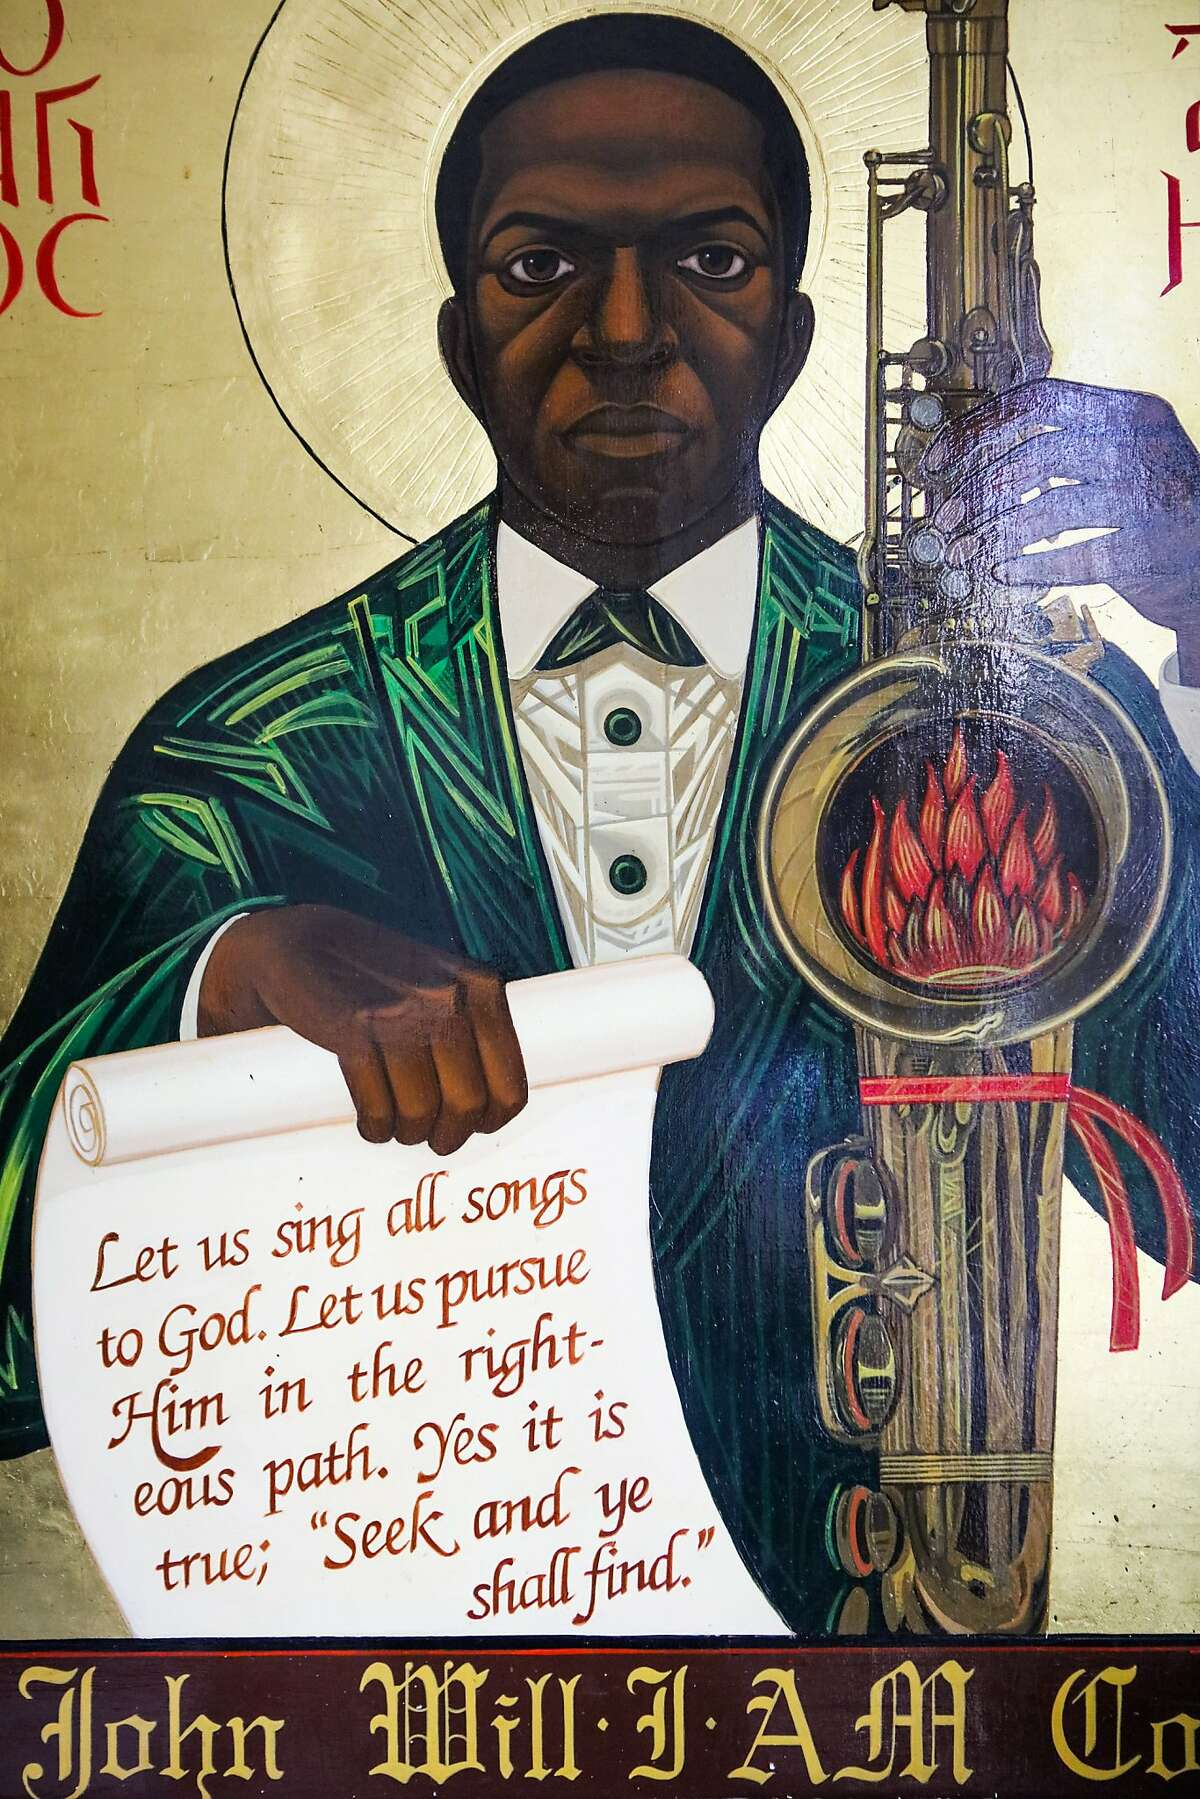 A painting by Reverend Mark Dukes, of John Coltrane, sits on the wall of the St. John Coltrane African Orthodox Church in San Francisco, California on Wednesday, February 17, 2016.